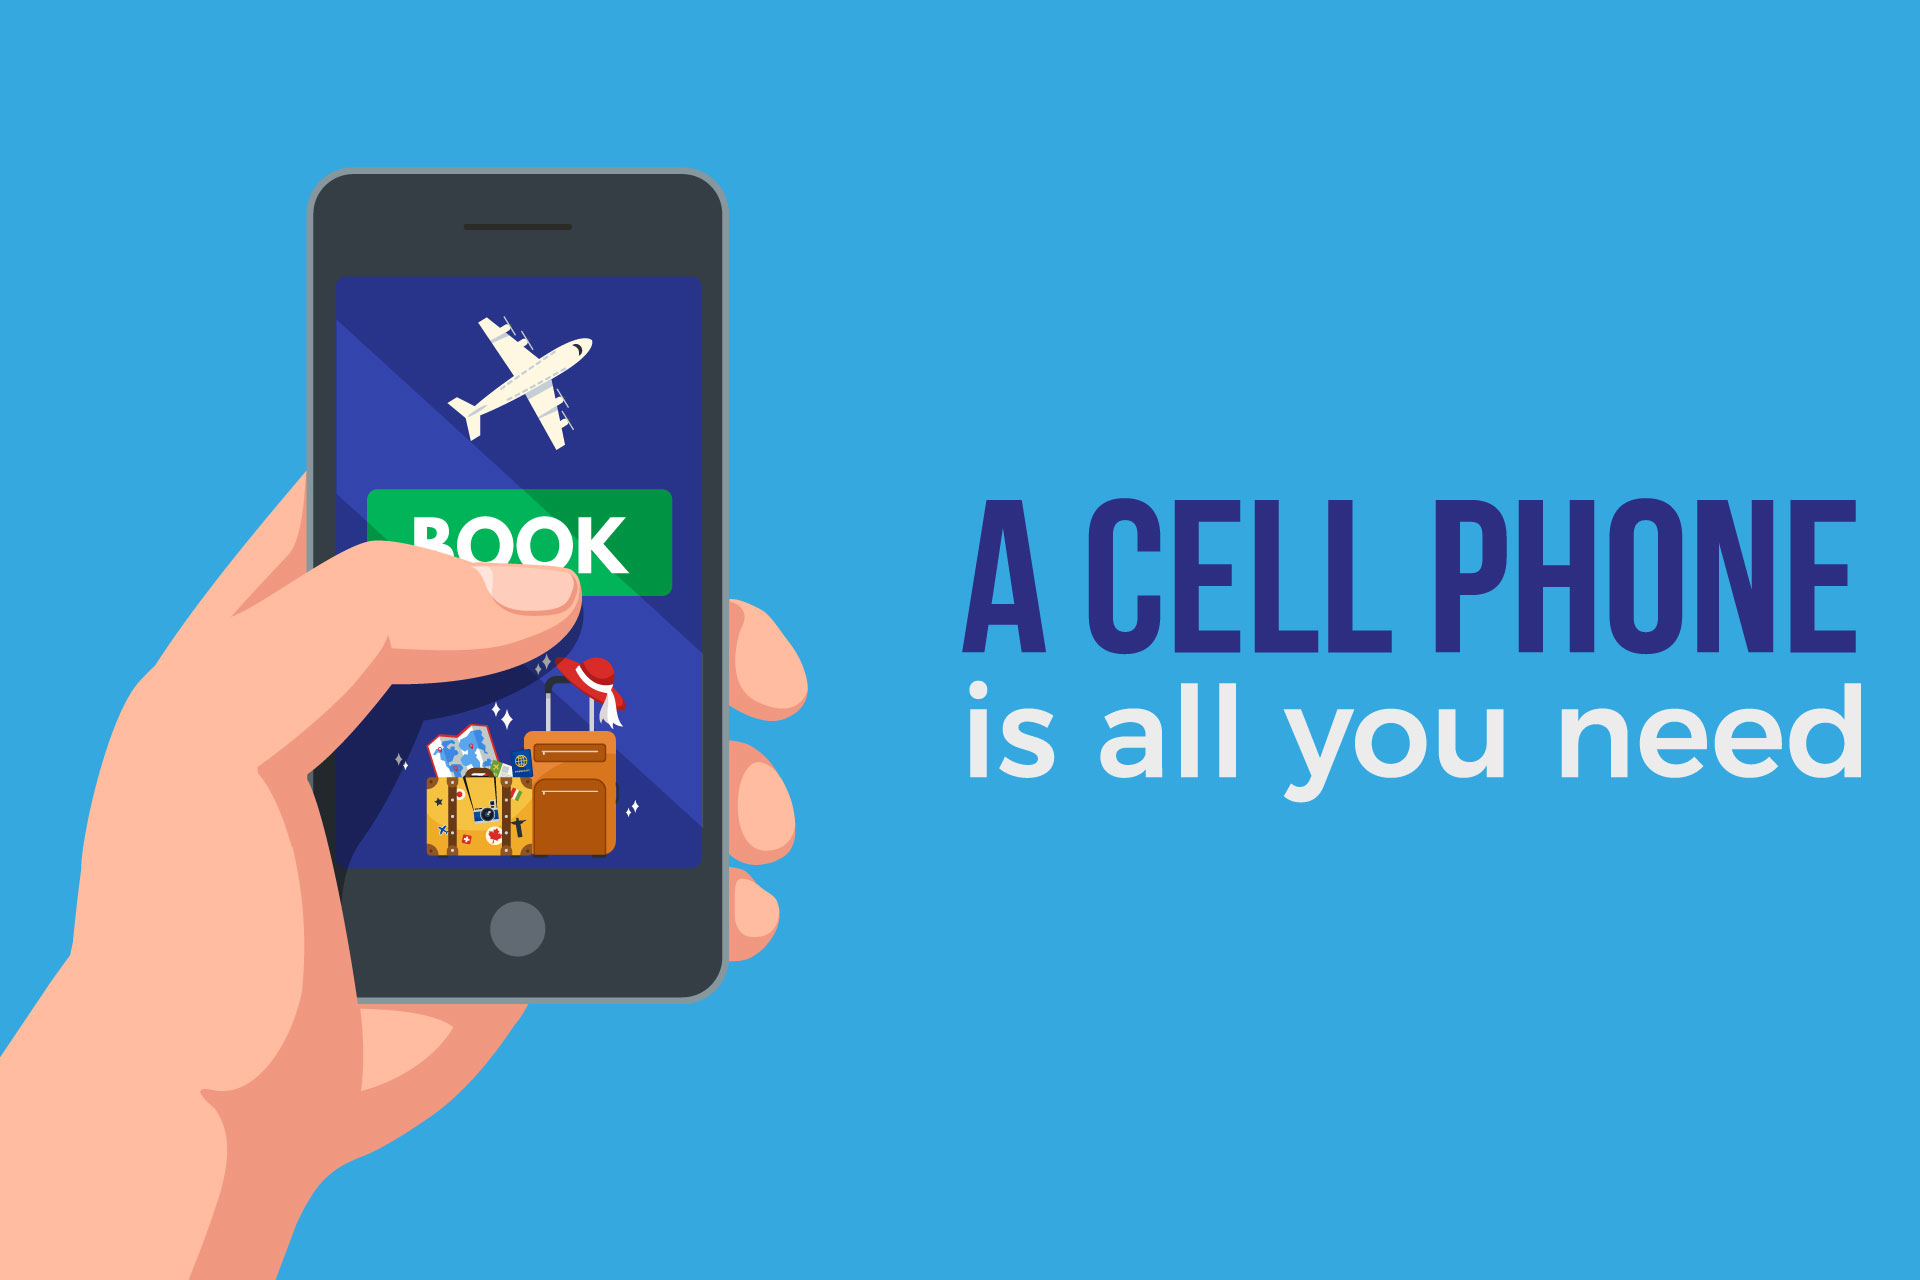 A cell phone is all you need